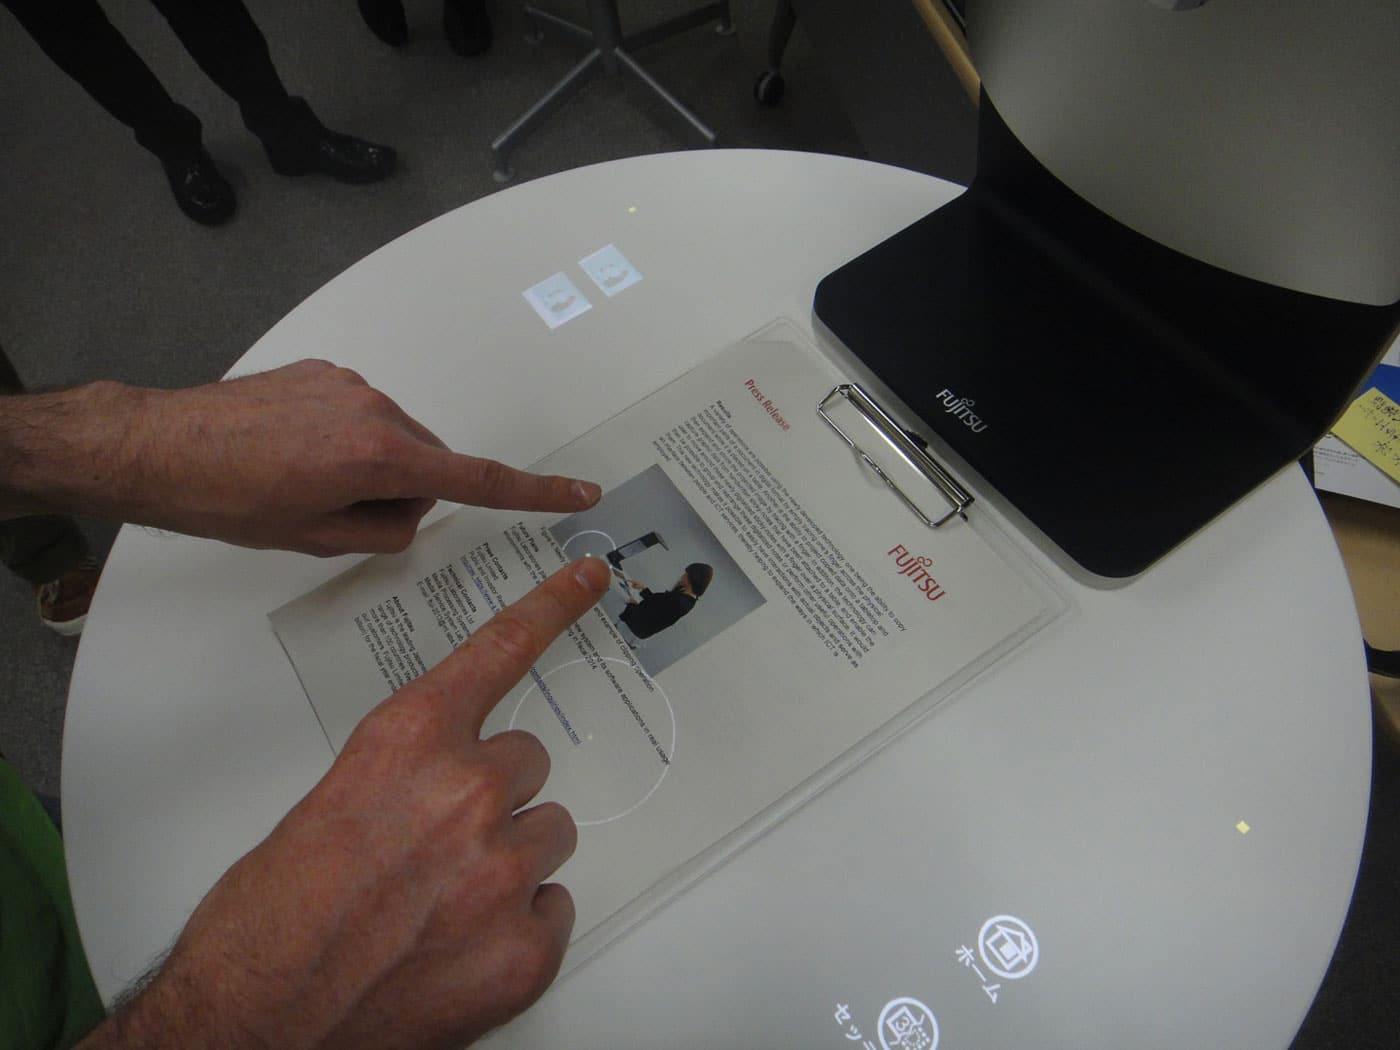 piece-of-paper-into-touchscreen